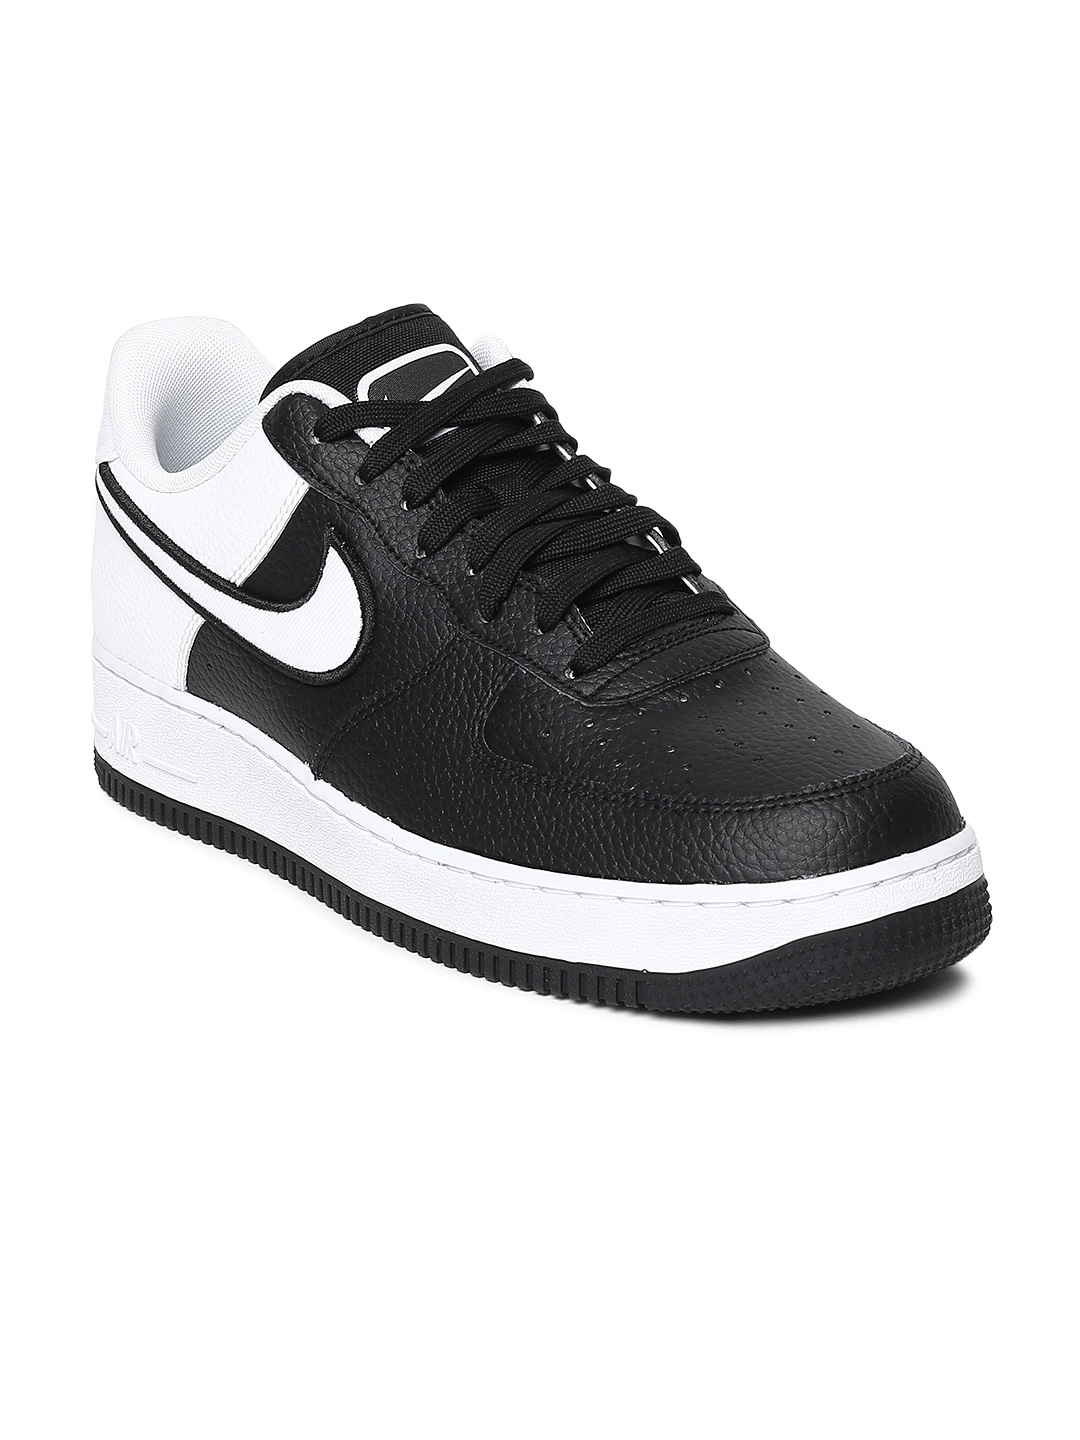 premium selection fafb7 5eddc Nike Air Force Casual Shoes - Buy Nike Air Force Casual Shoes online in  India